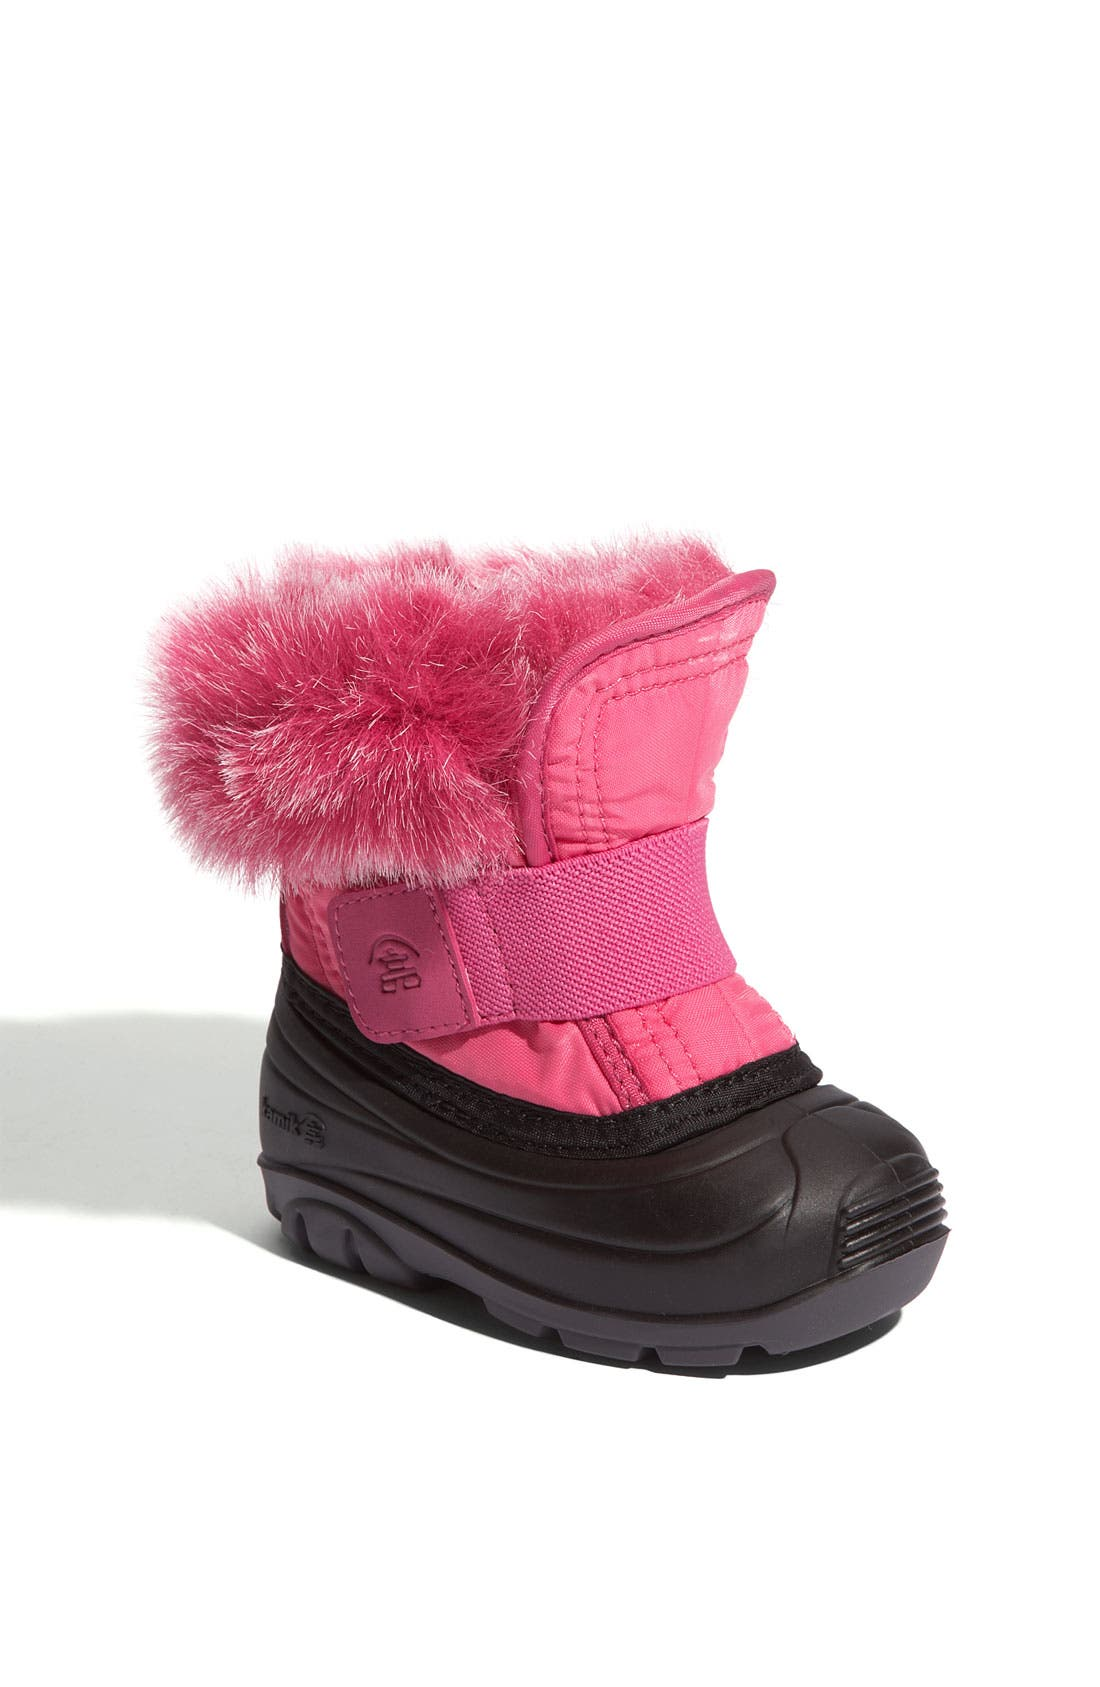 Main Image - Kamik 'Sugarplum' Boot (Walker & Toddler)